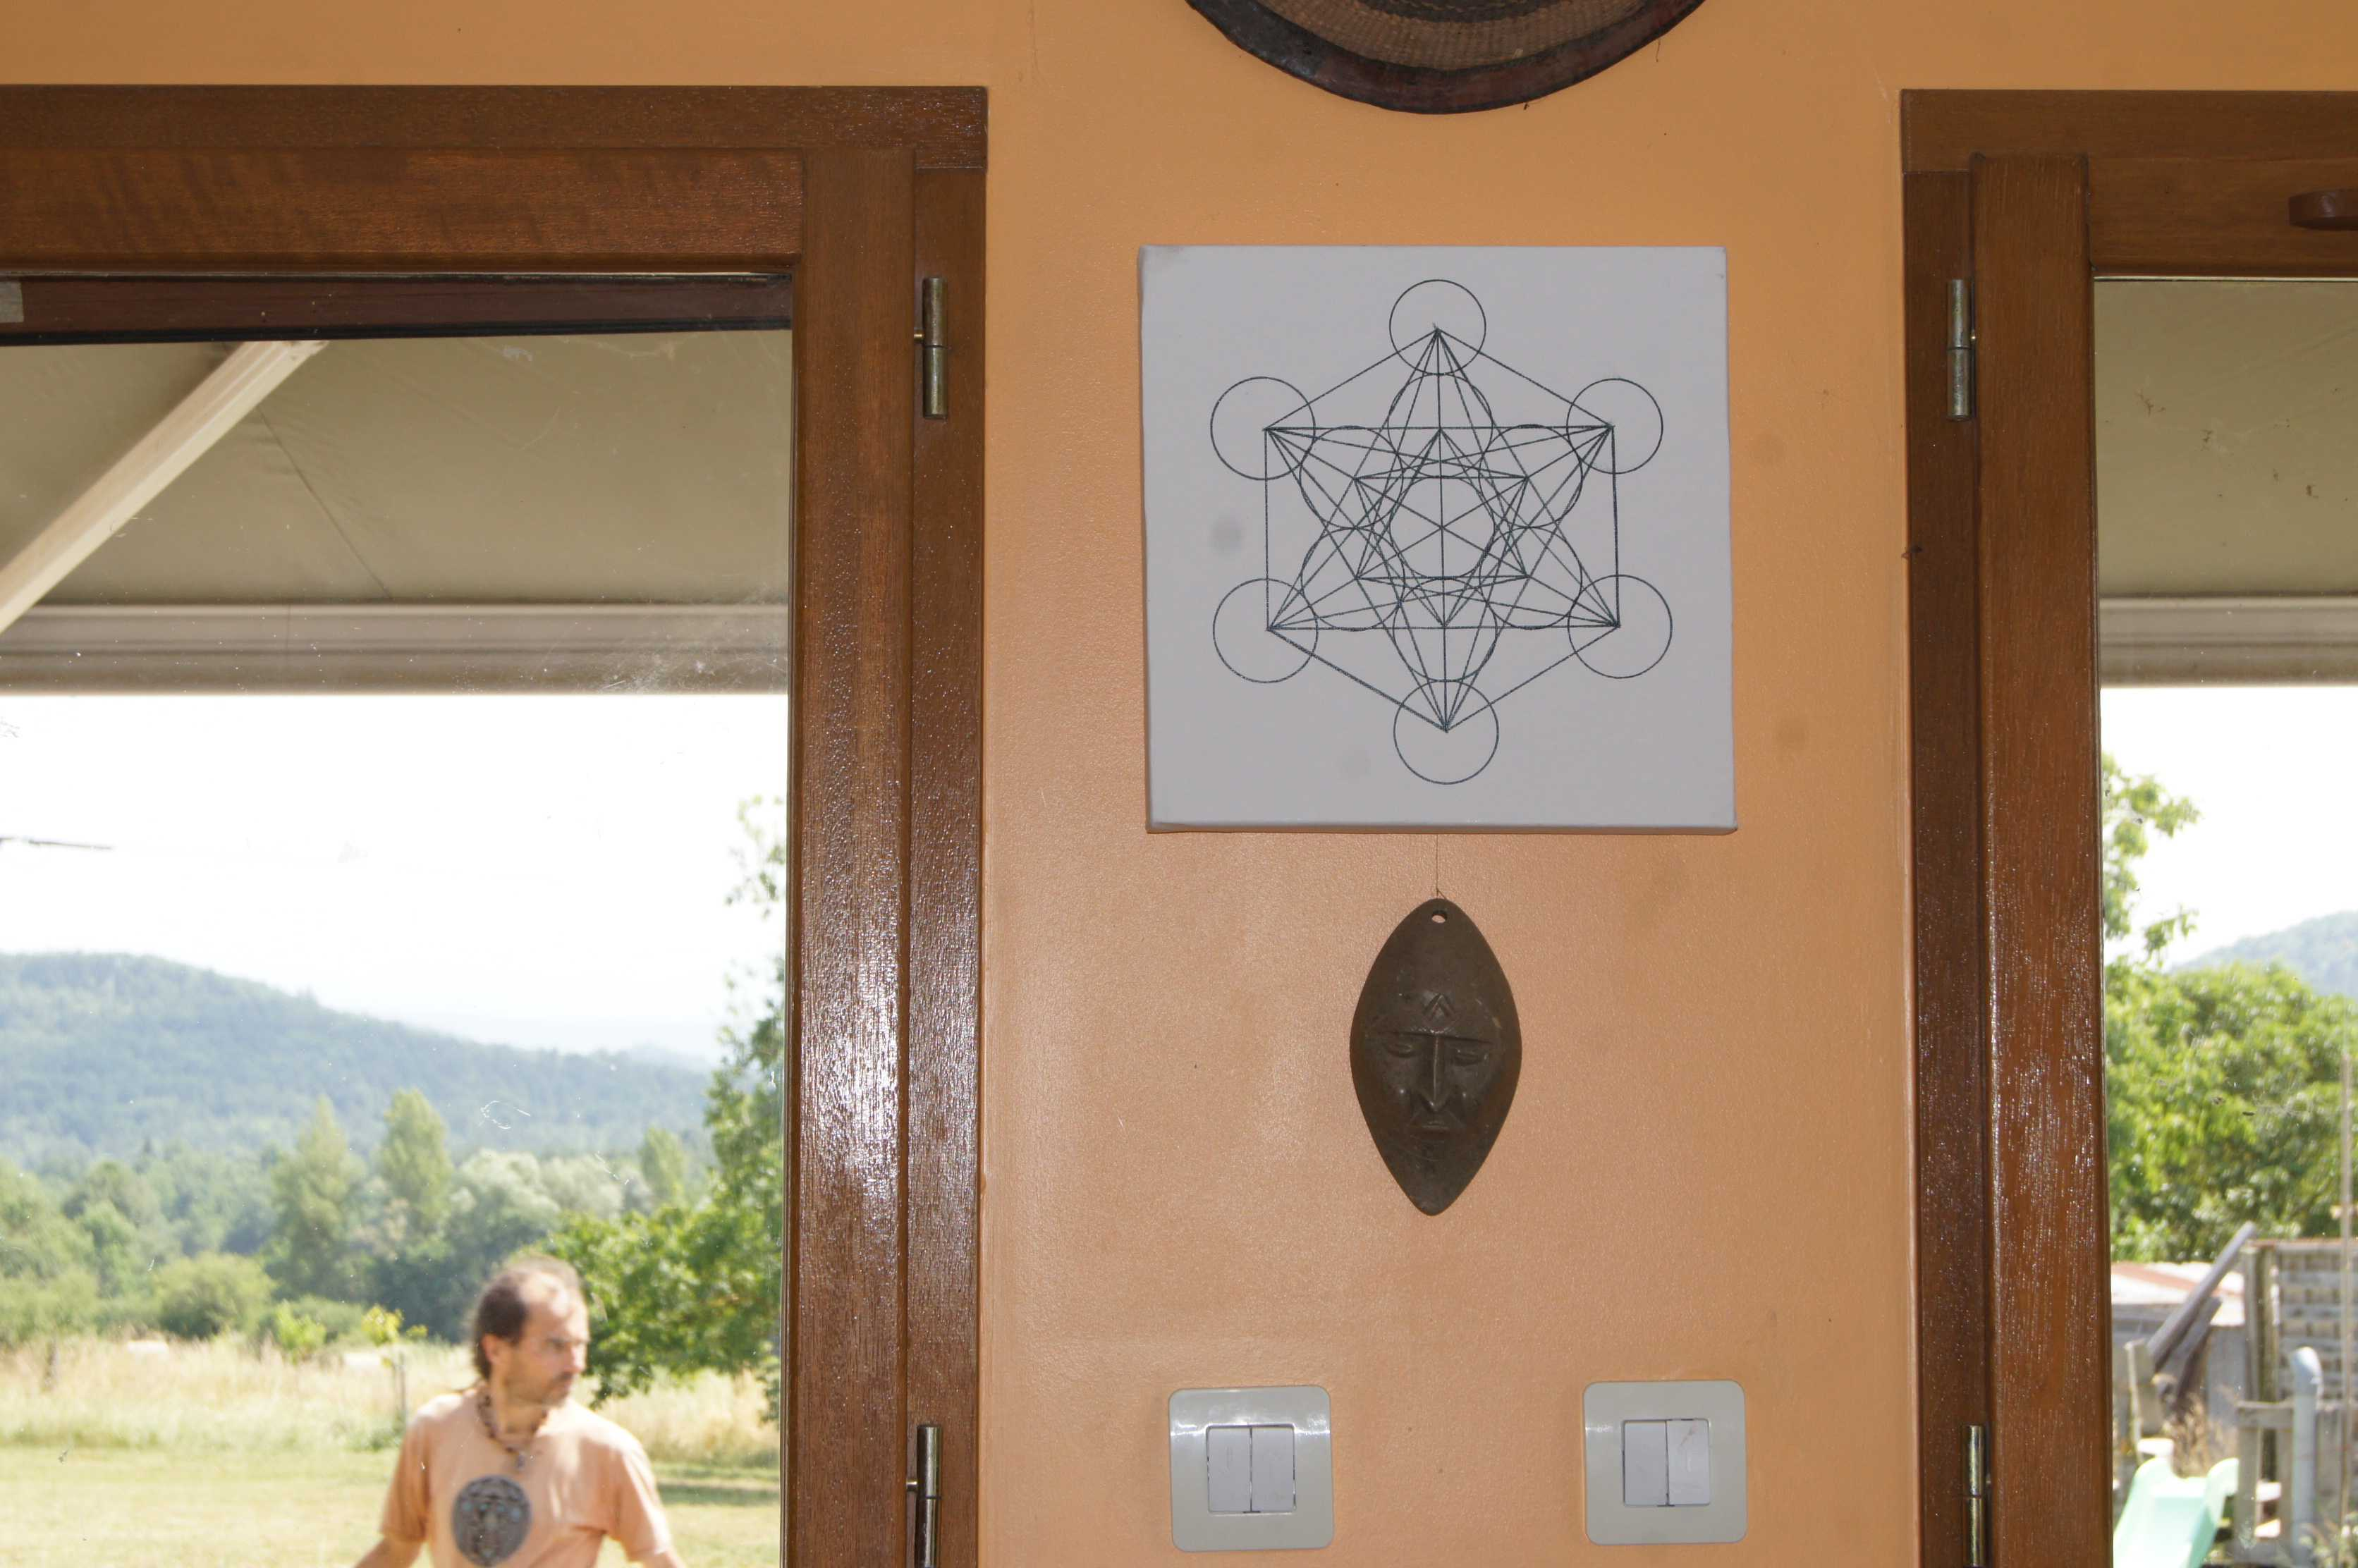 decoration-metatron